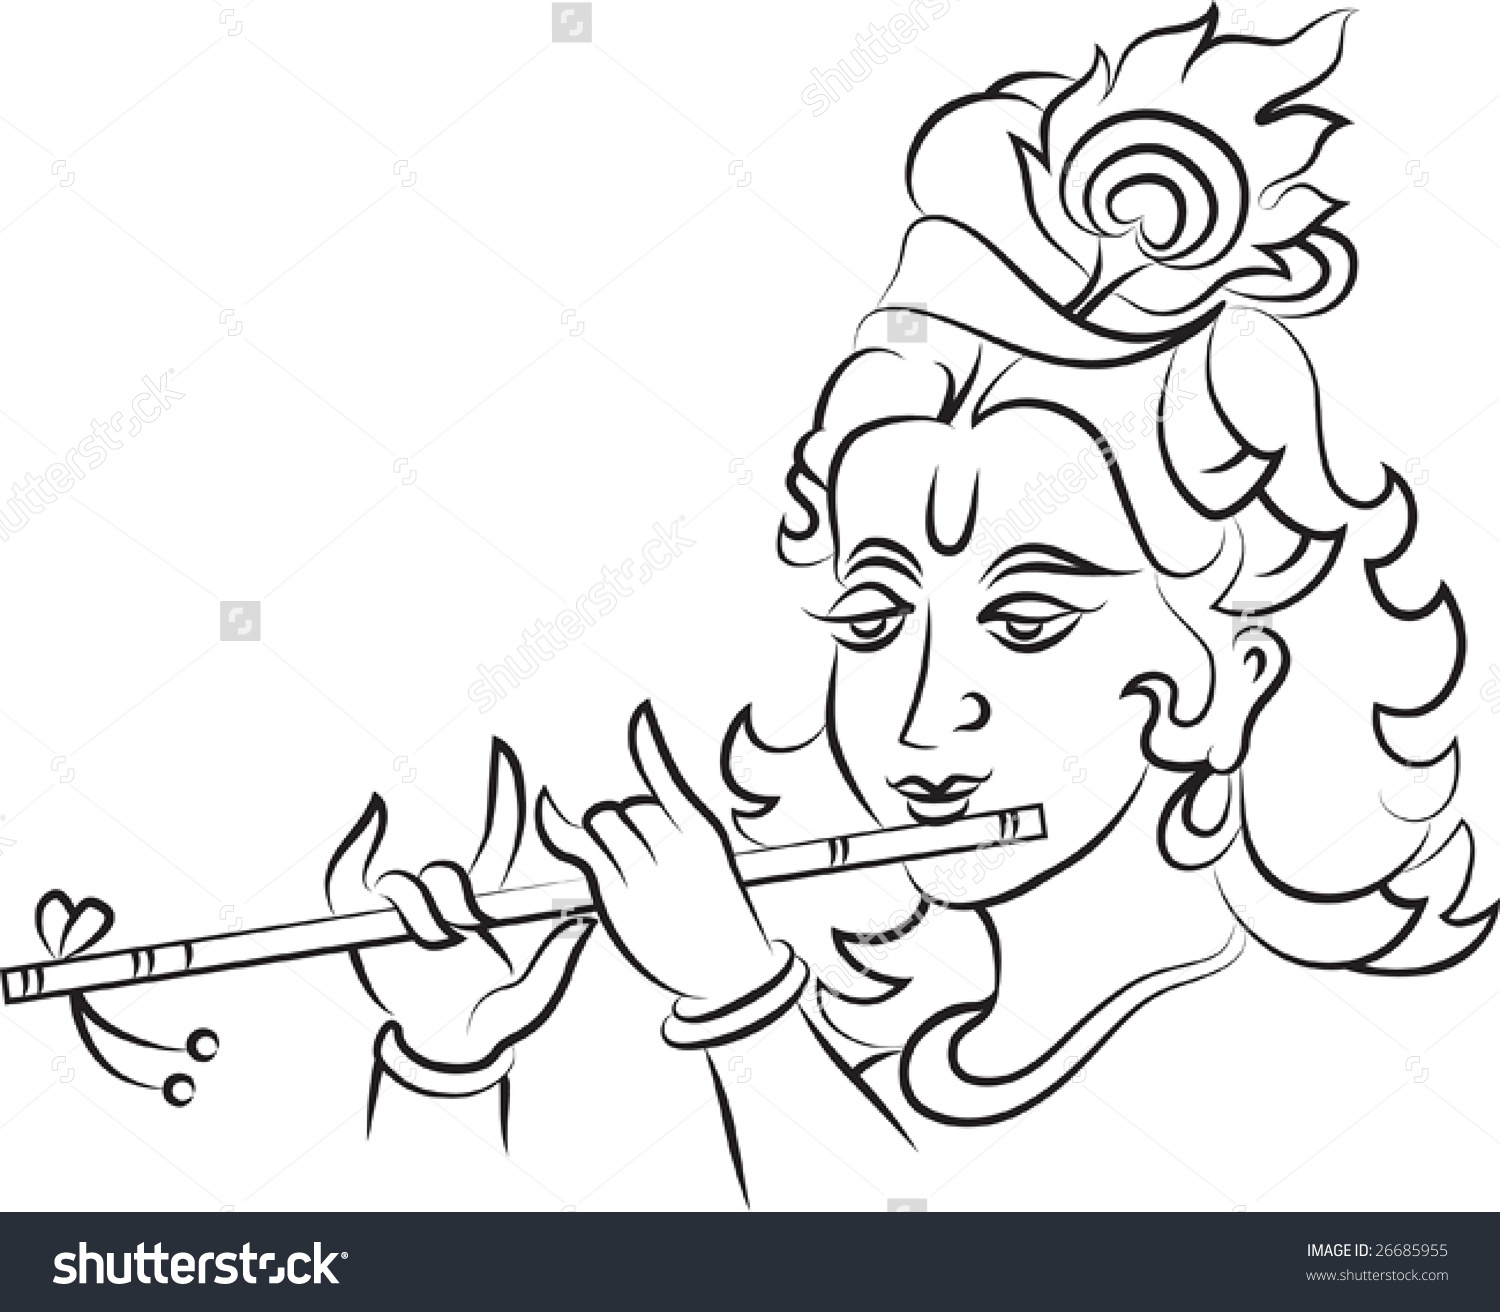 The Best Free Krishna Drawing Images Download From 50 Free Drawings